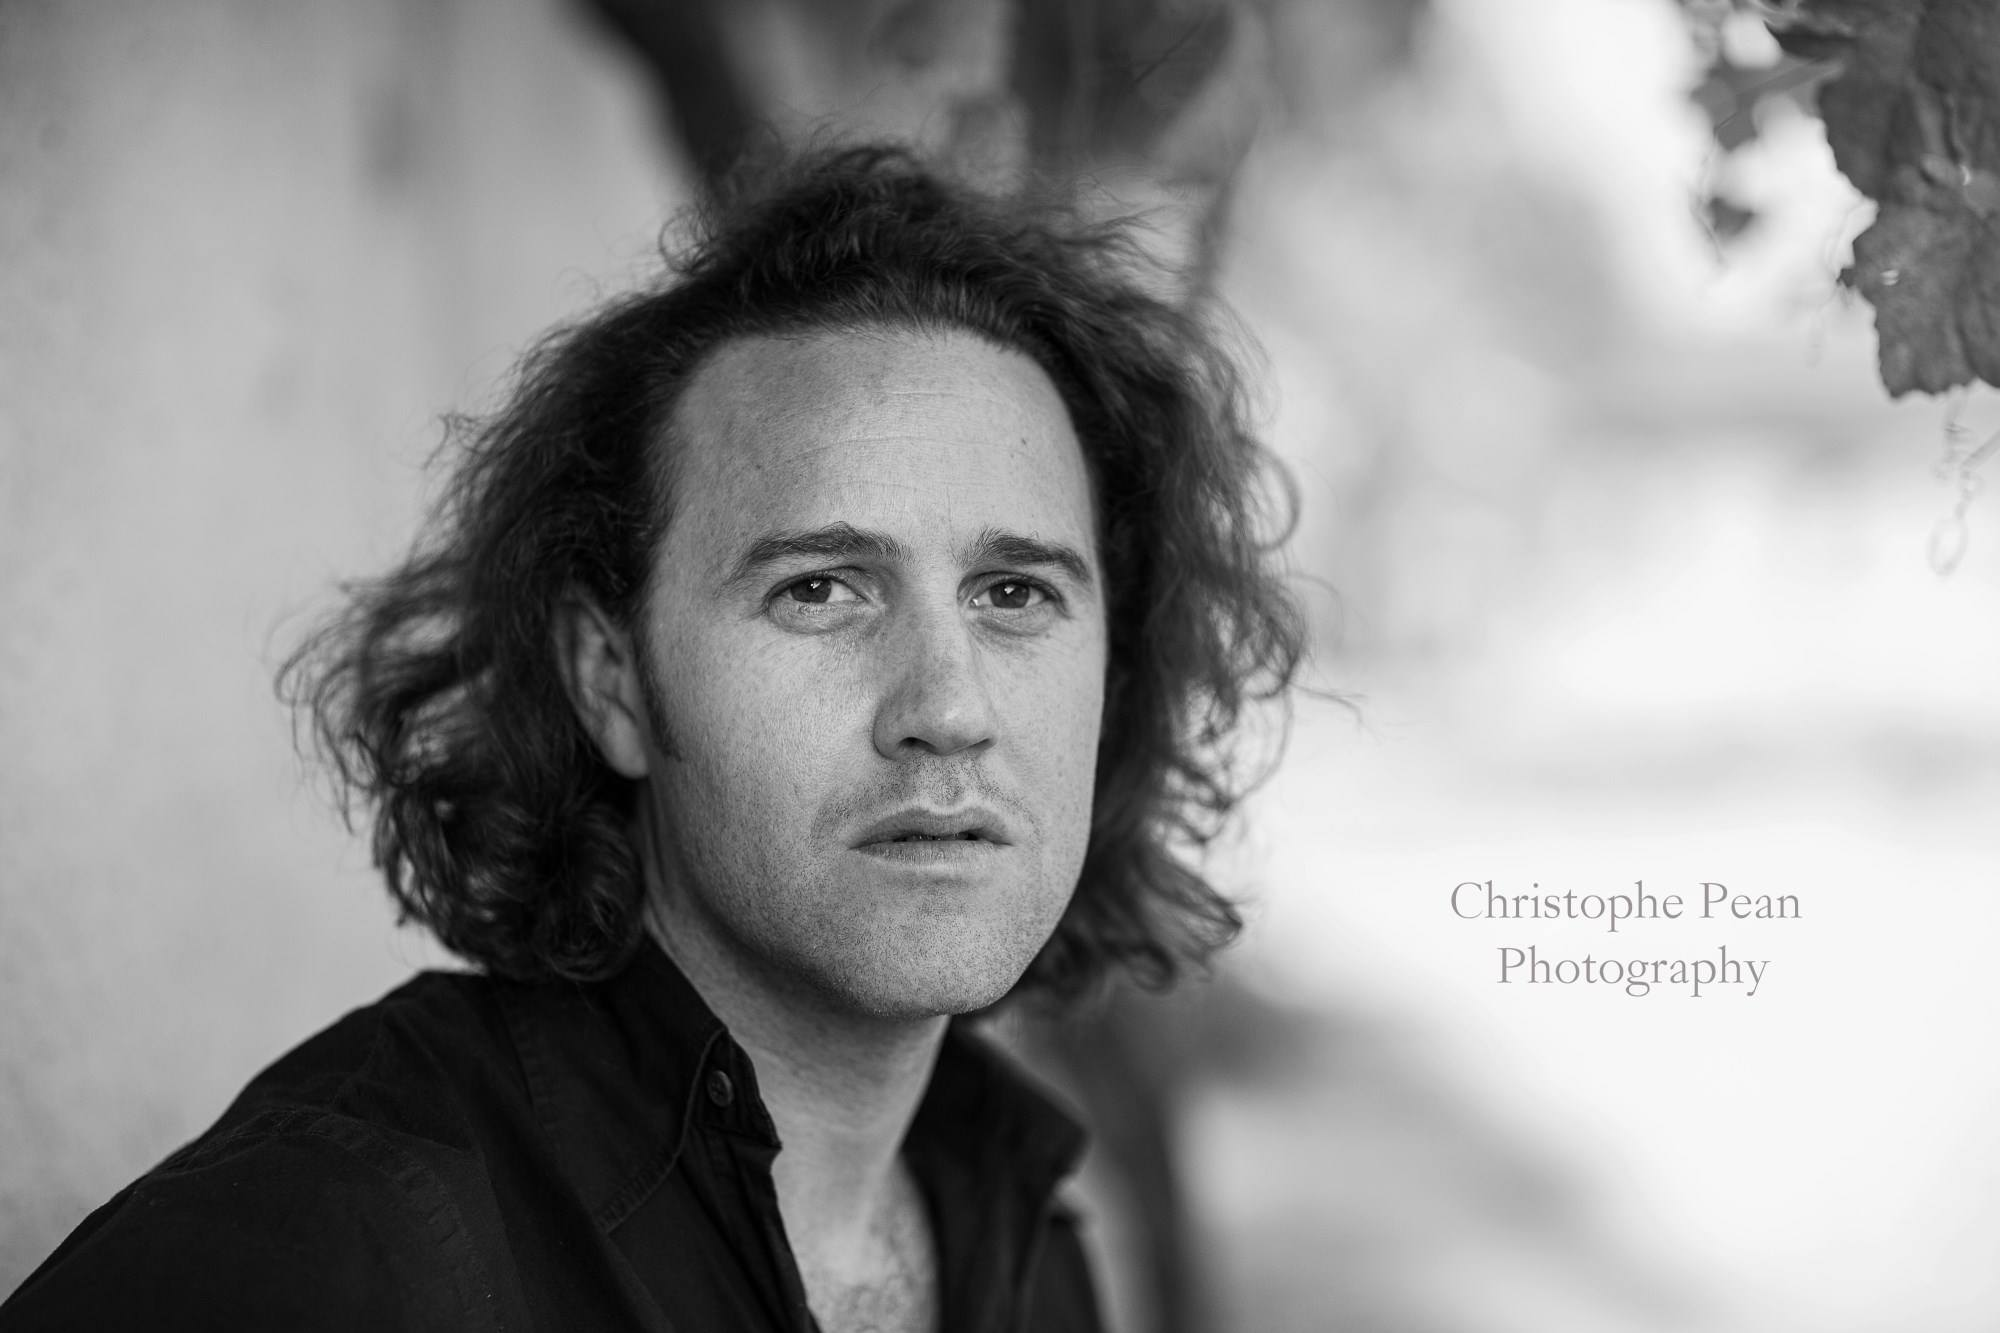 guillaume_gargaud_photo.jpg